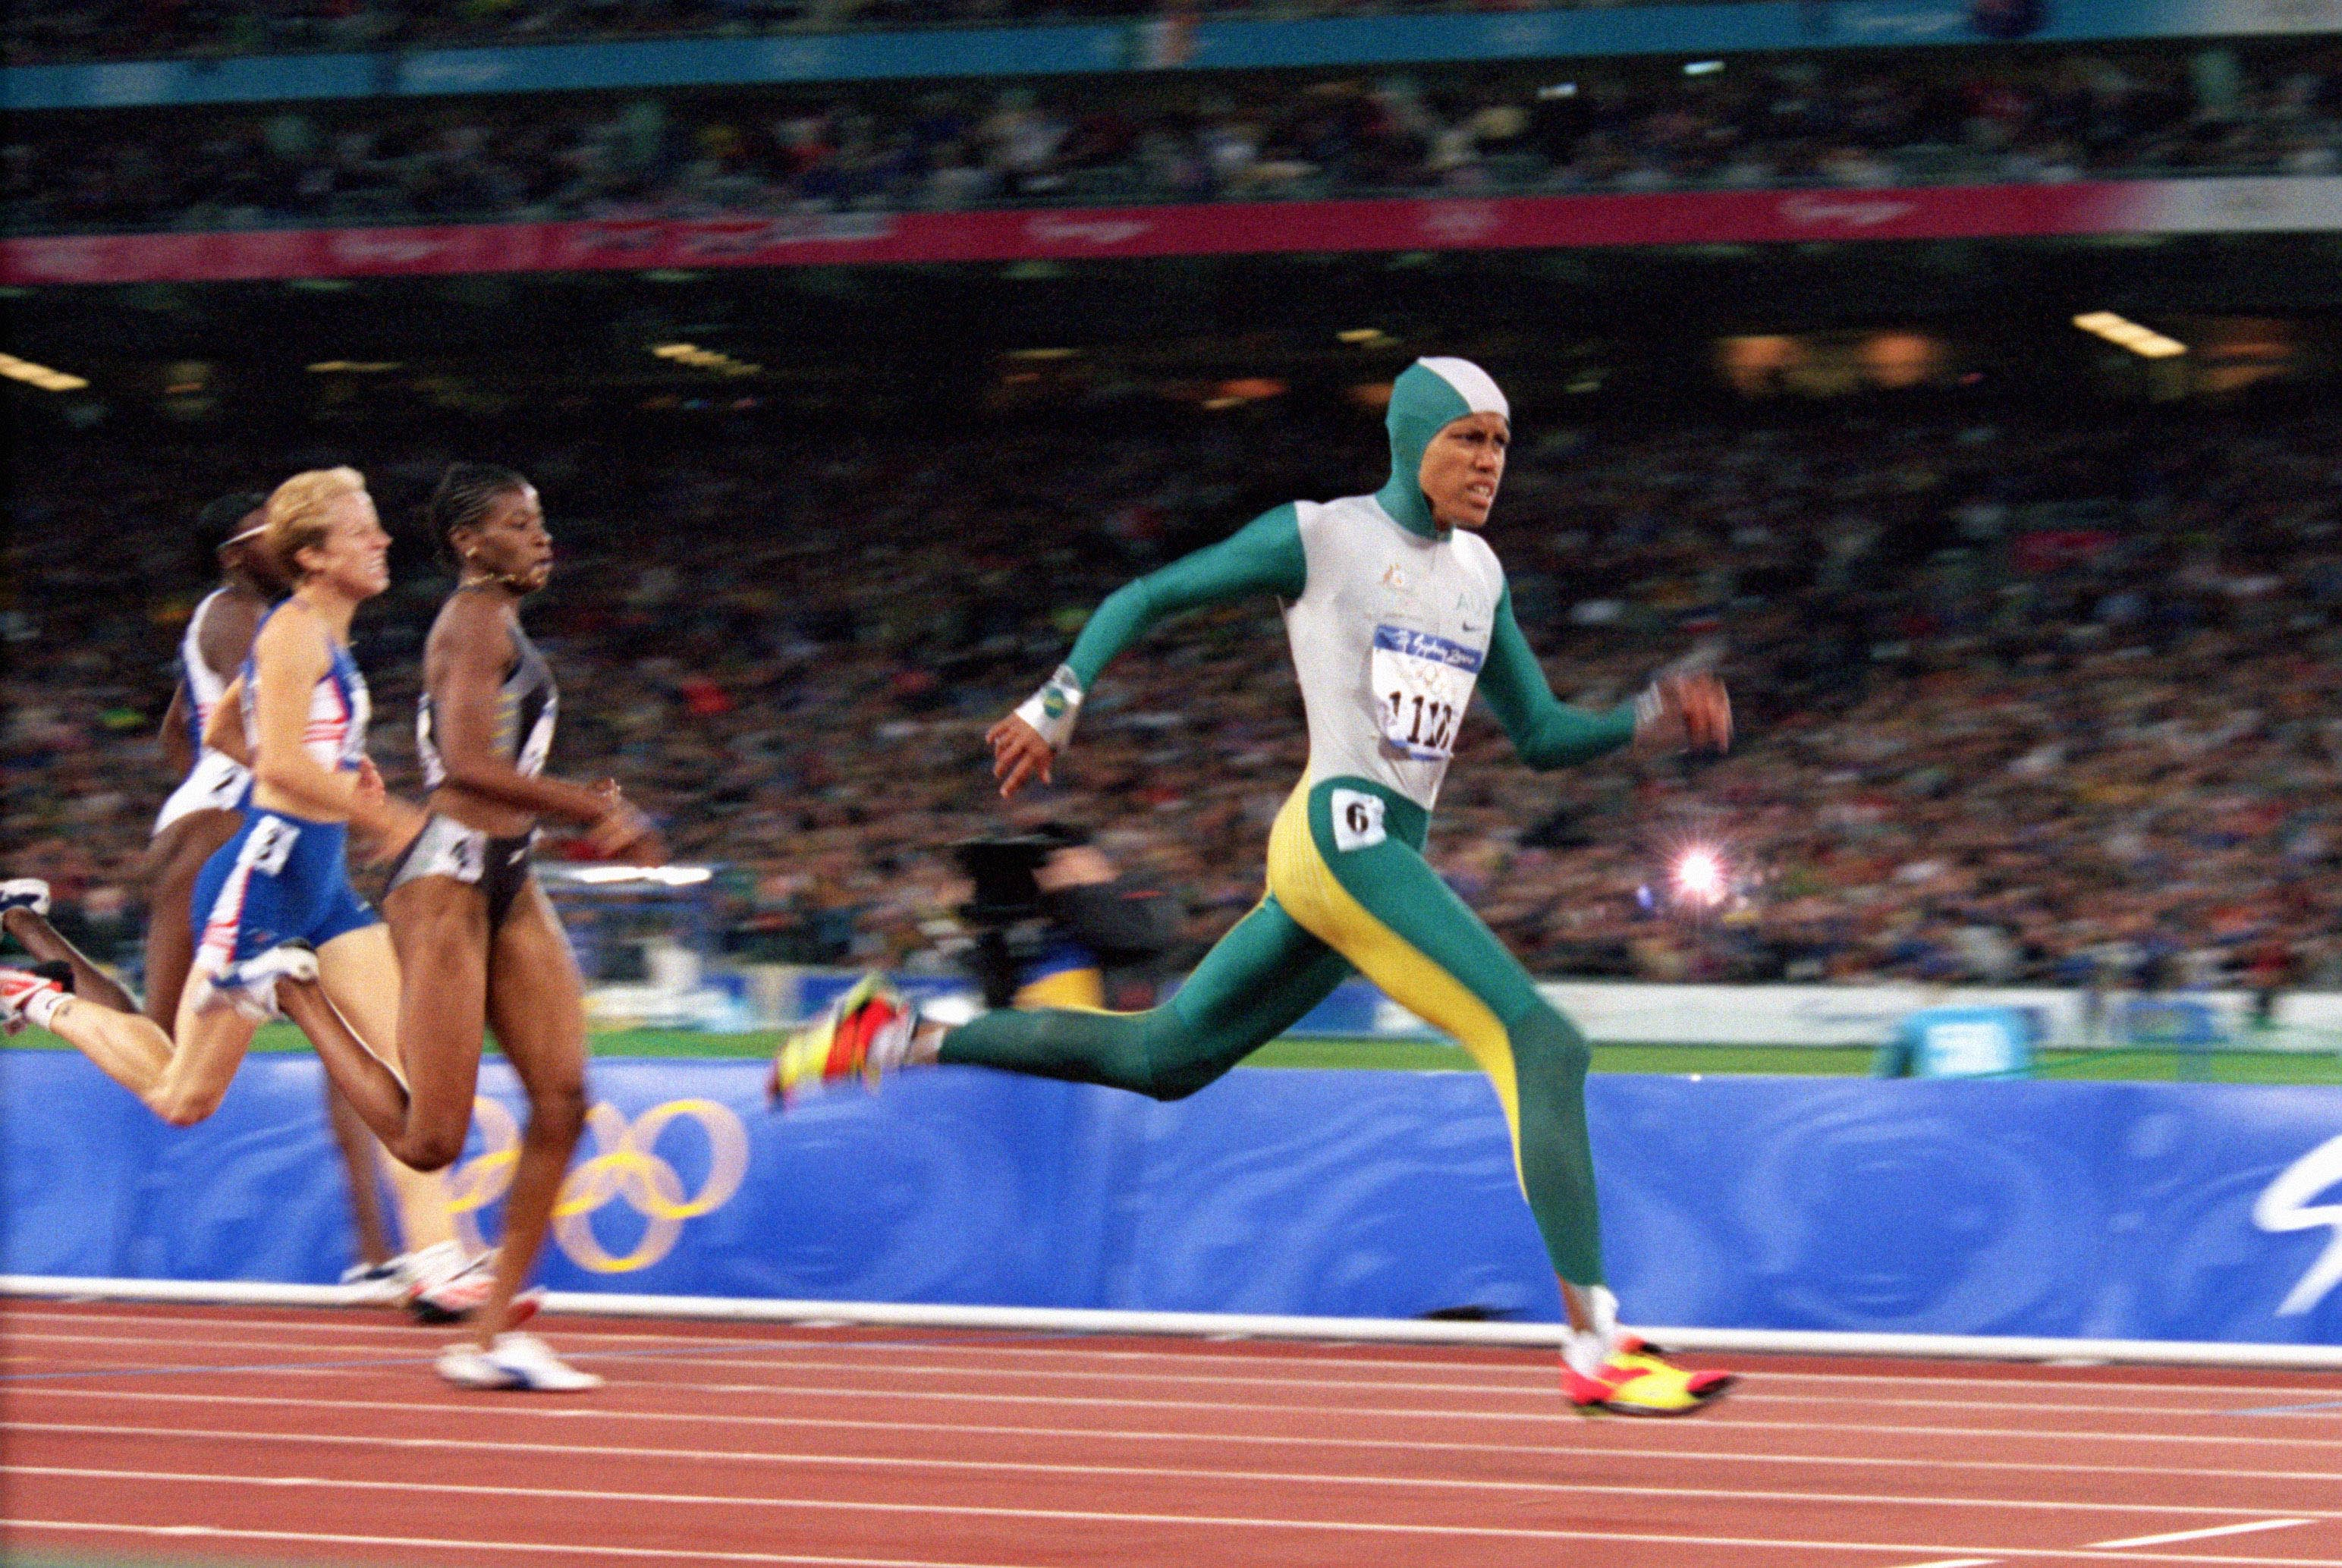 Cathy Freeman during the 400m final at the Sydney Olympics, 25 September 2000